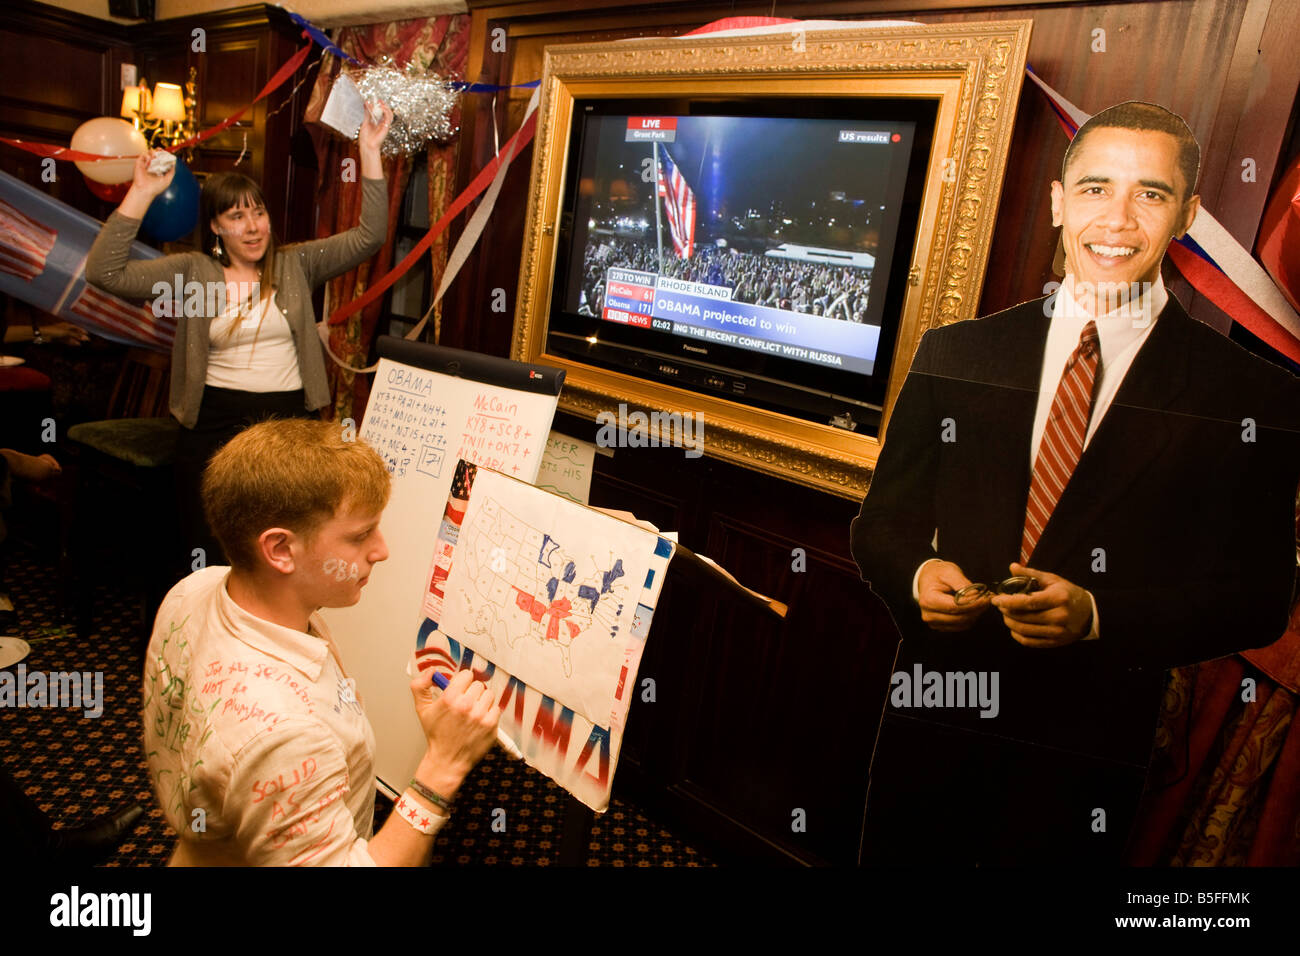 Democrat Party members keep up with latest results with life-size cardboard cut-out of Barack Obama during 2008 - Stock Image